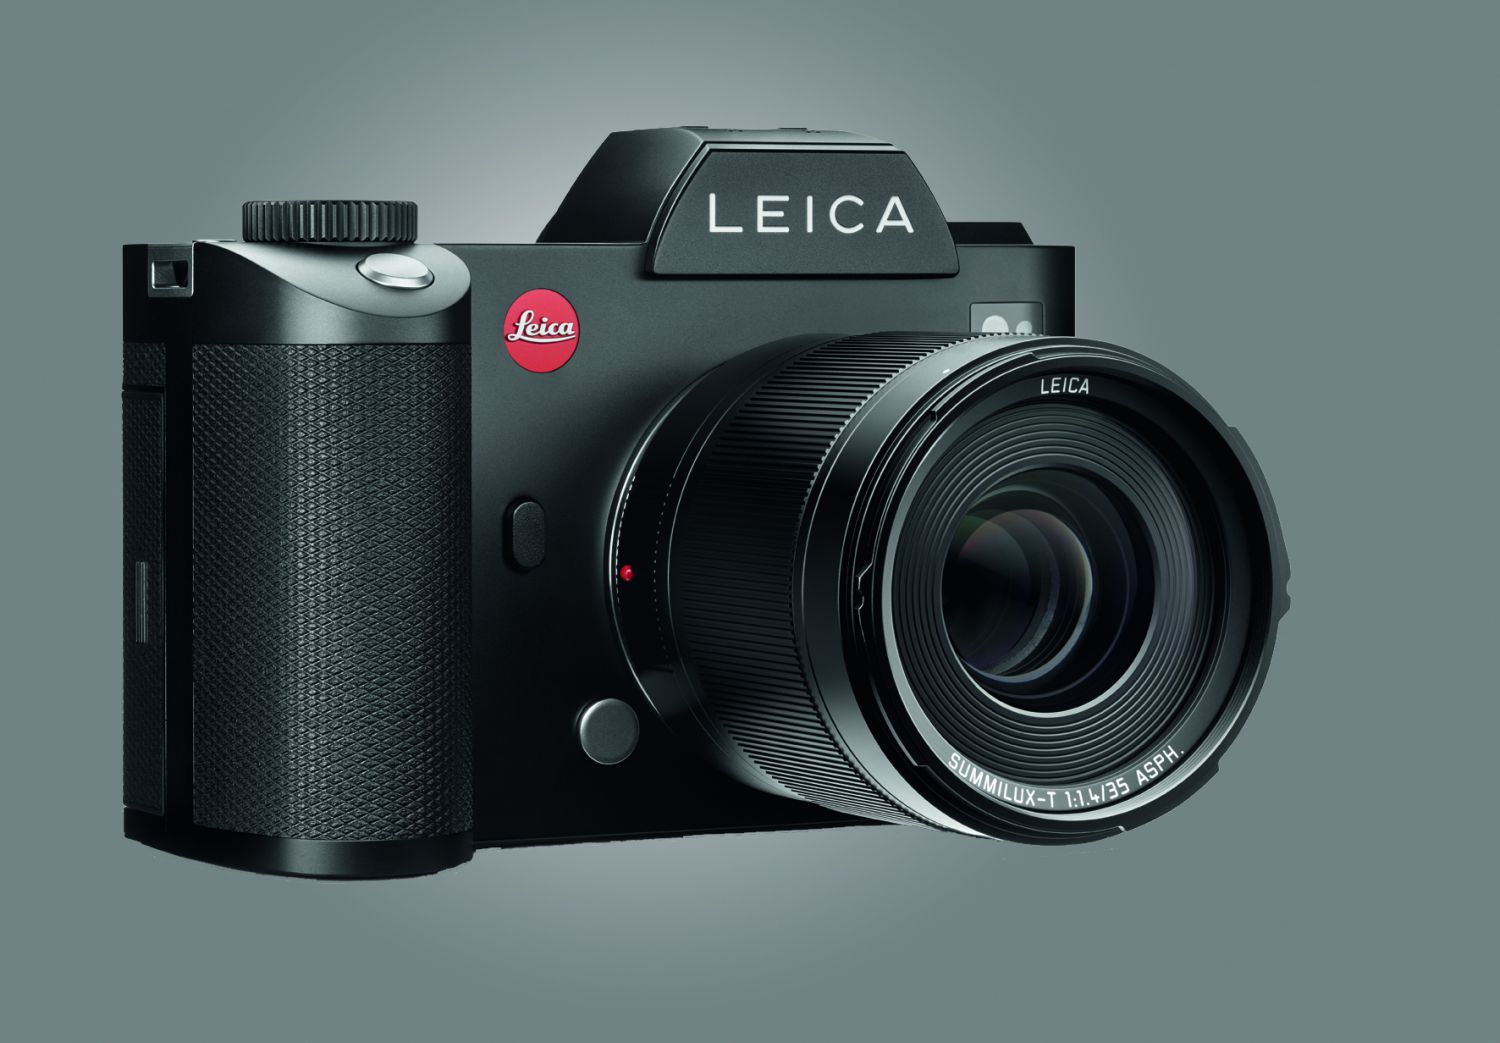 Hands-On With The New Leica SL Mirrorless Camera